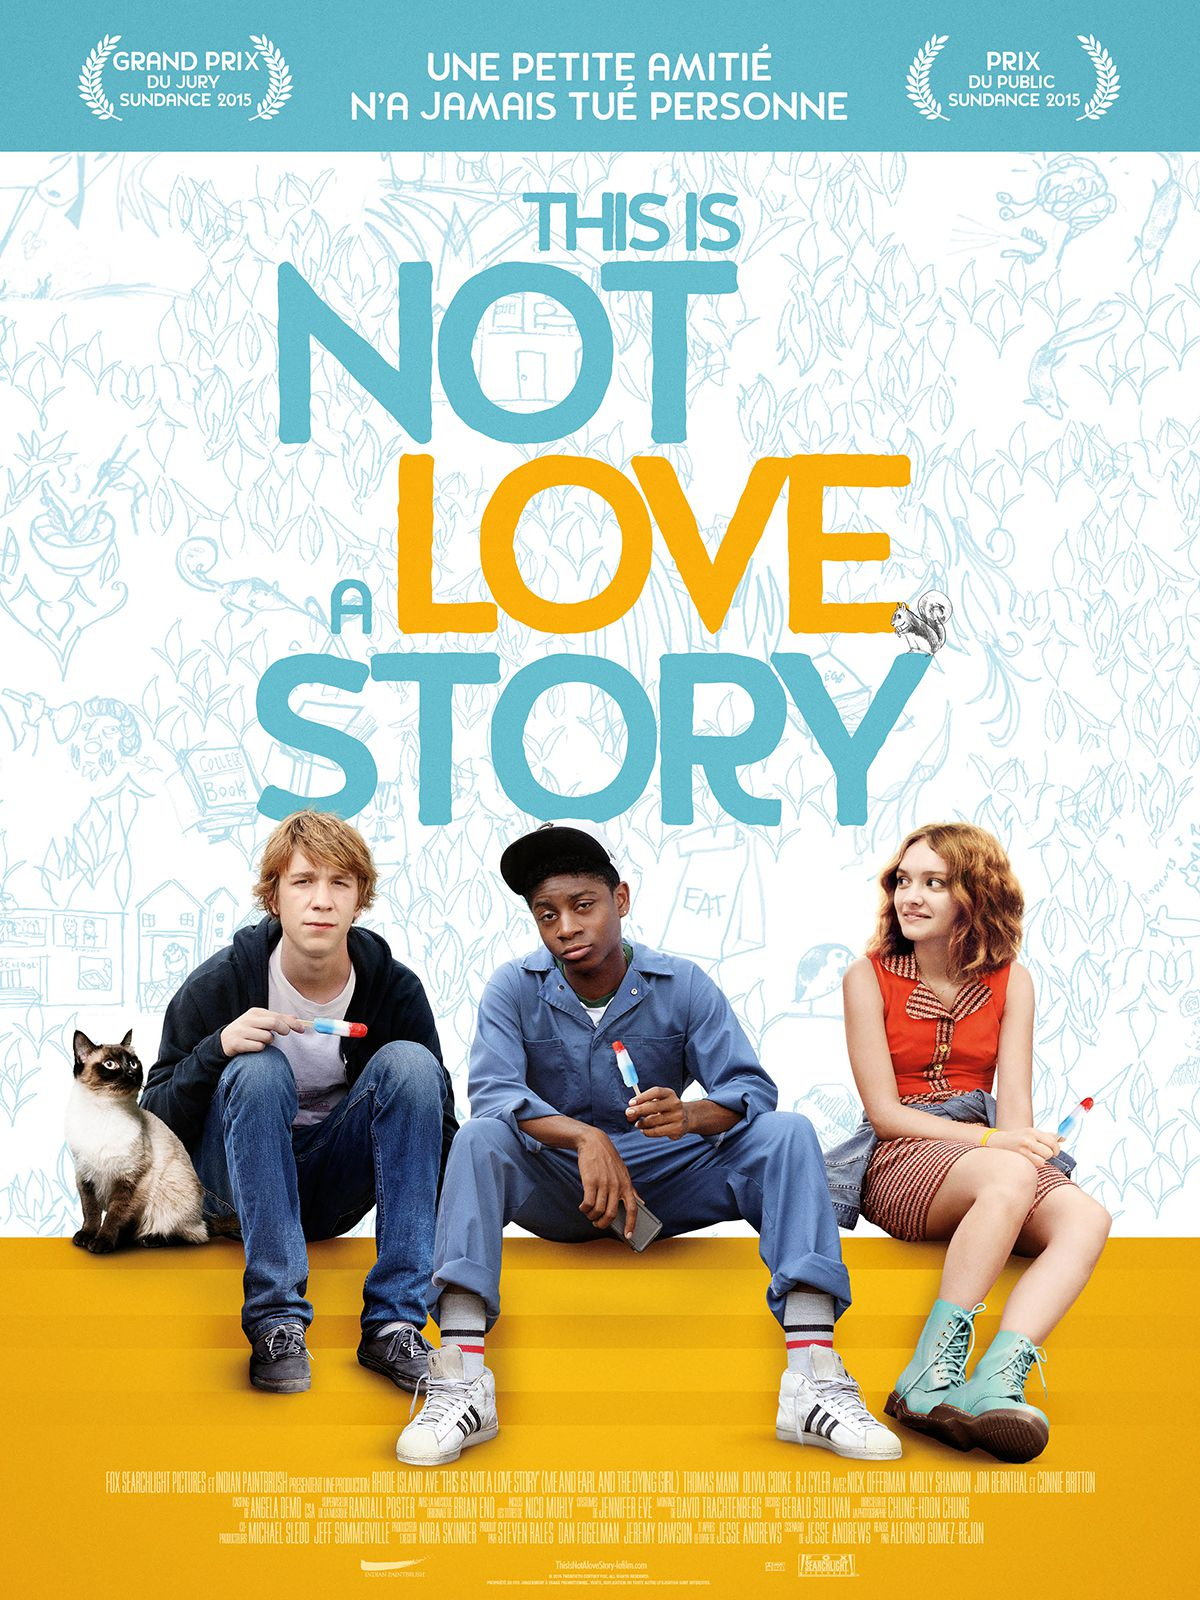 This Is Not A Love Story - Film (2015)